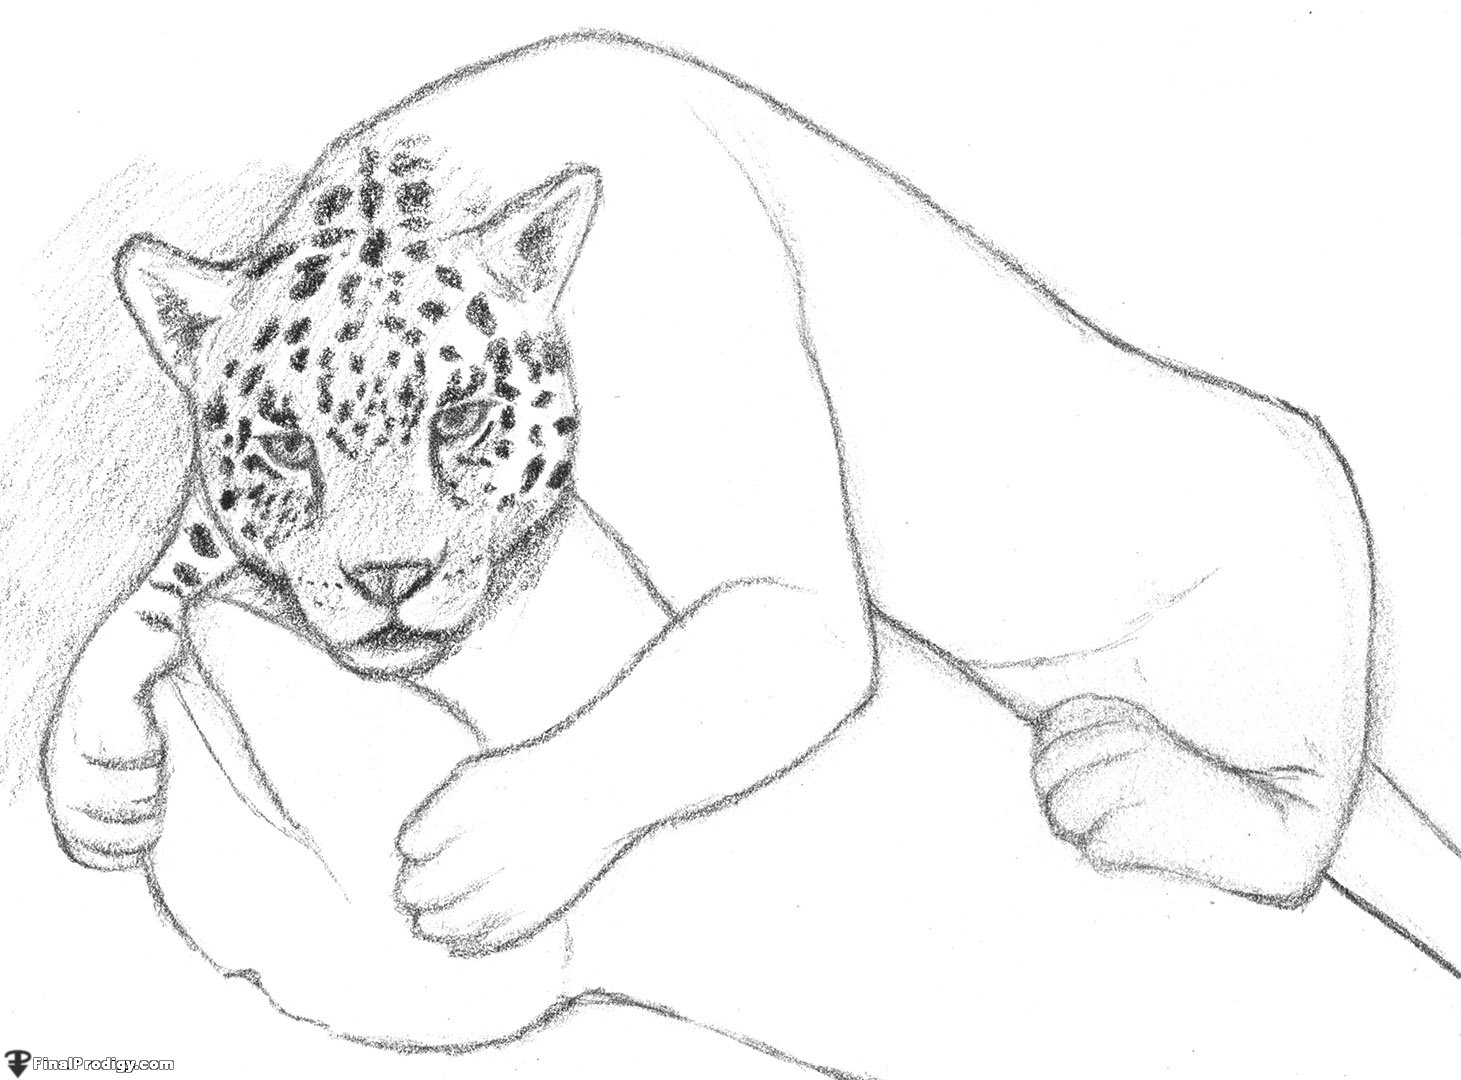 Black jaguar animal drawing - photo#14